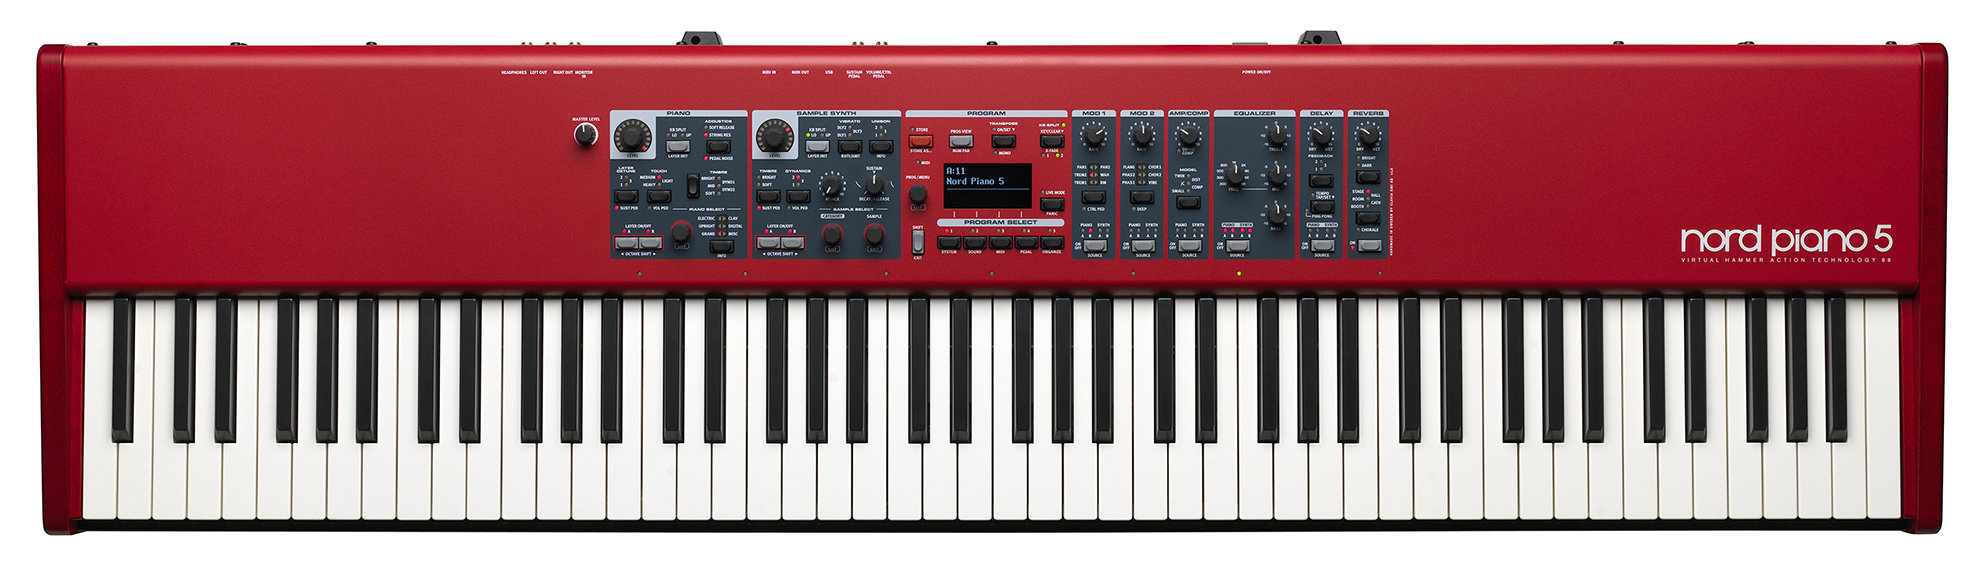 Stagepianos - Clavia Nord Piano 5 88 Stagepiano - Onlineshop Musikhaus Kirstein